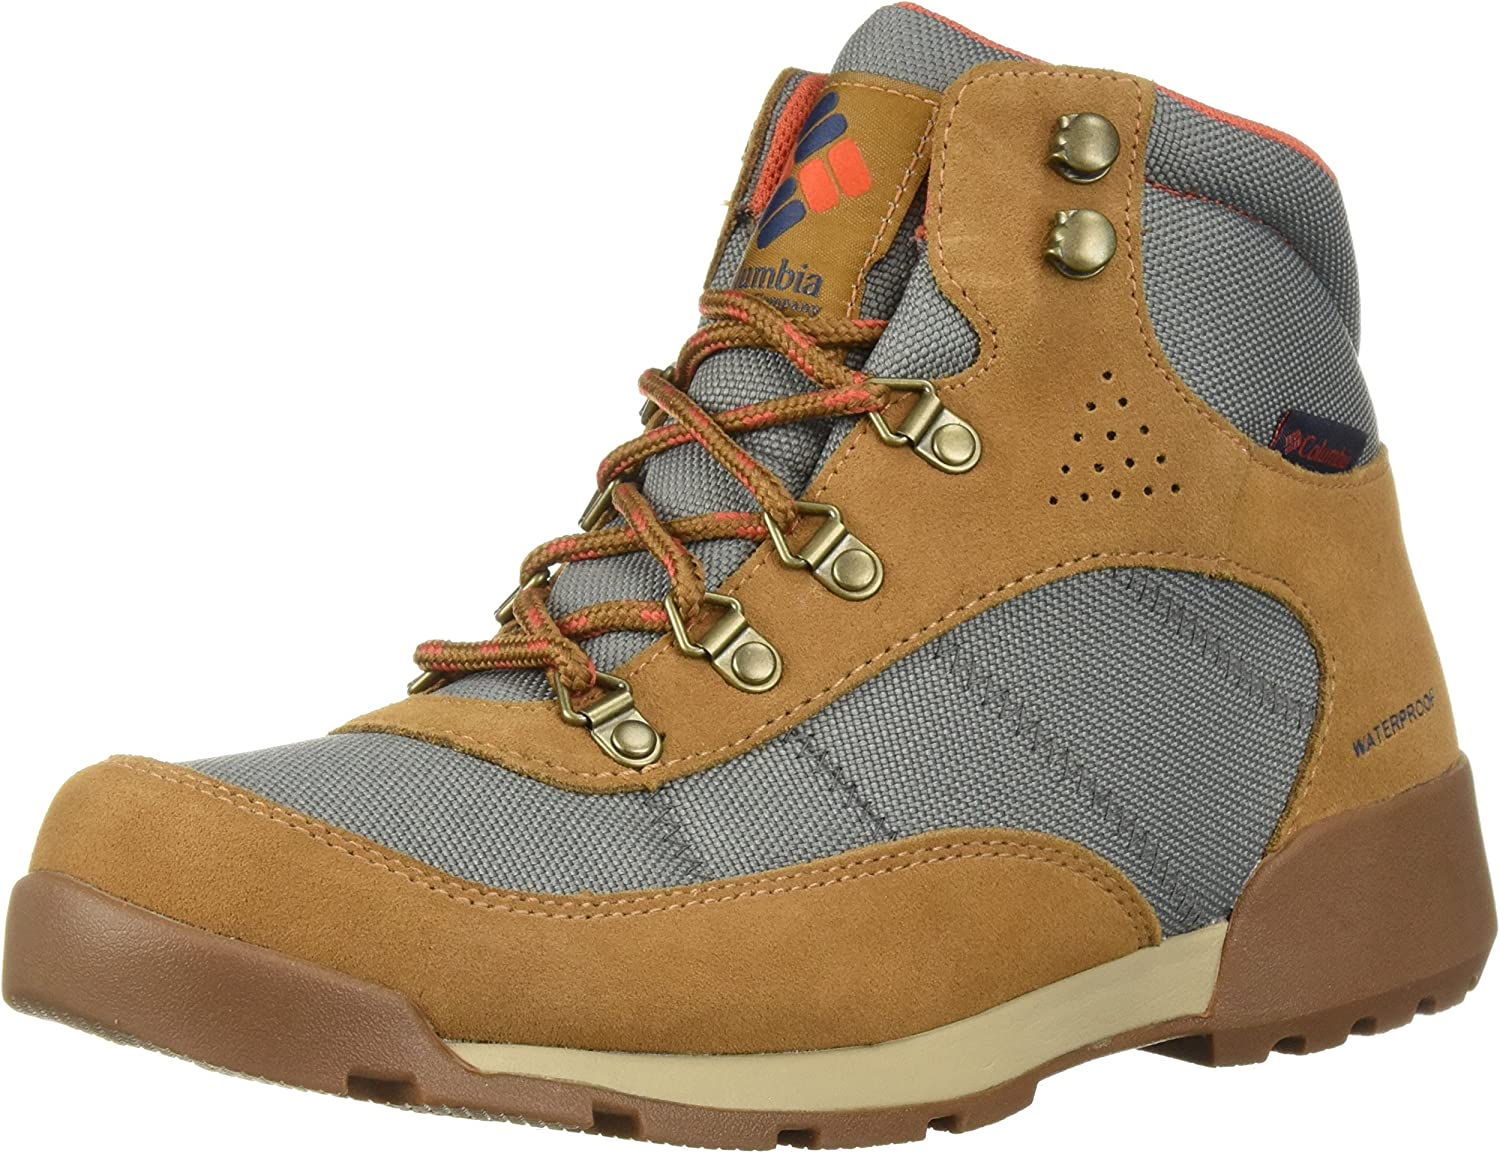 Columbia Women s Endicott Classic Mid Waterproof Hiking Boot